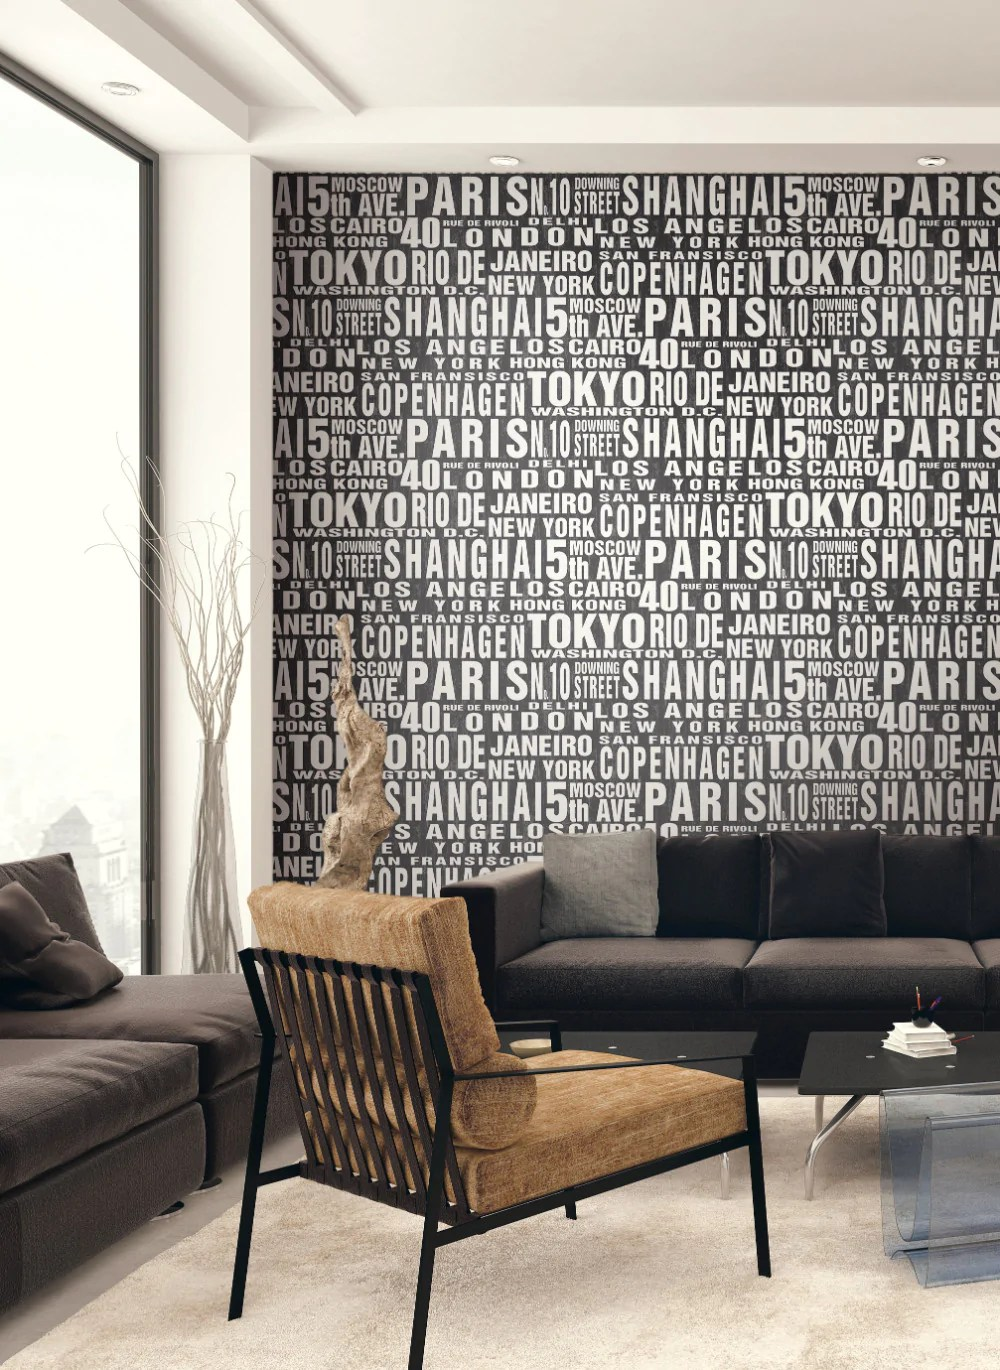 Around The World Peel-and-Stick Wallpaper in Black and White by NextWa – BURKE DECOR